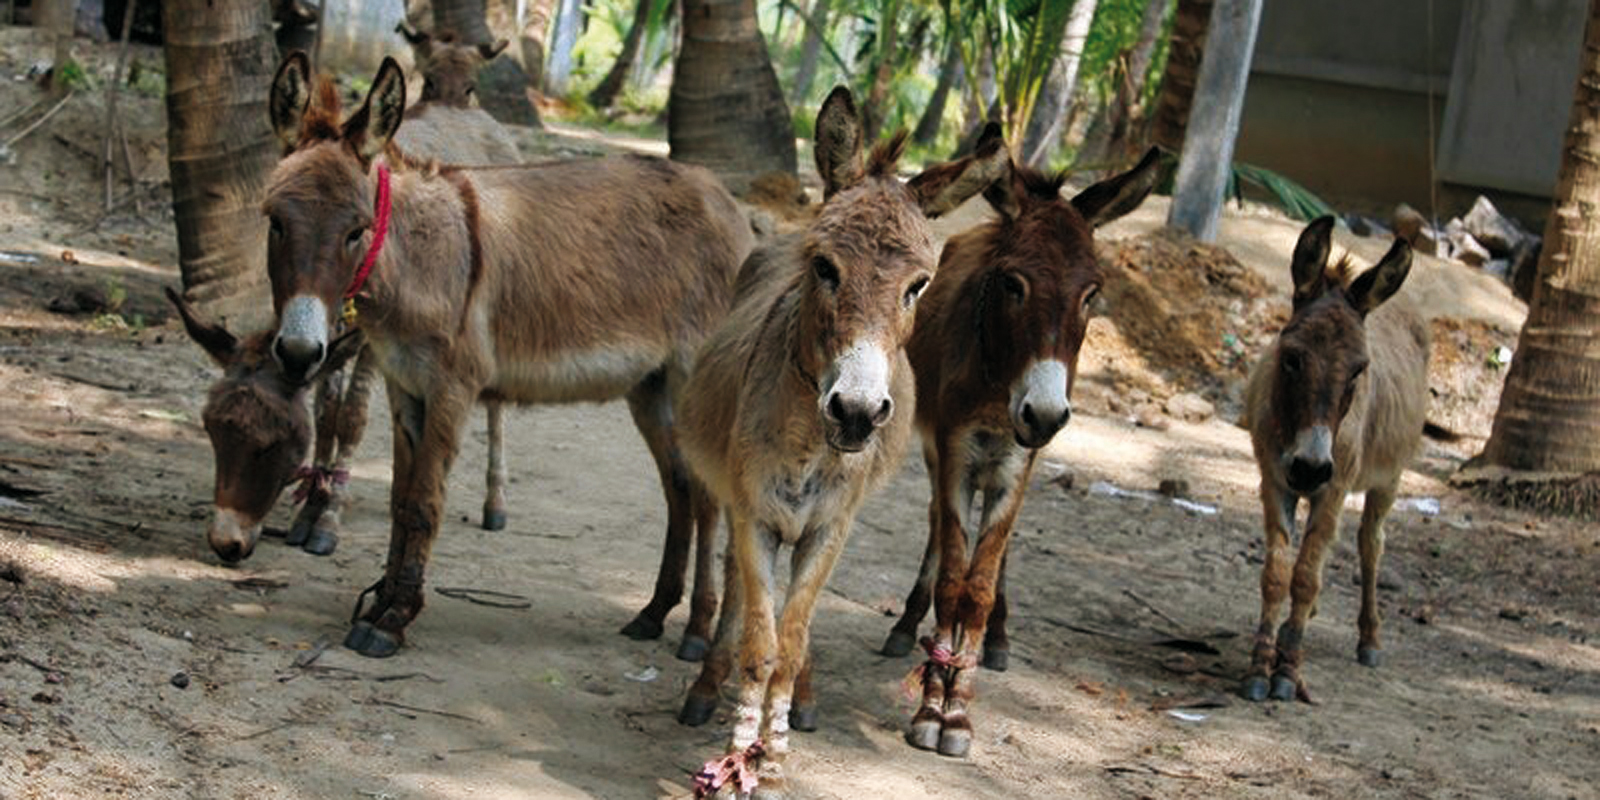 Since mobile clinics were introduced the health status of the donkeys has improved